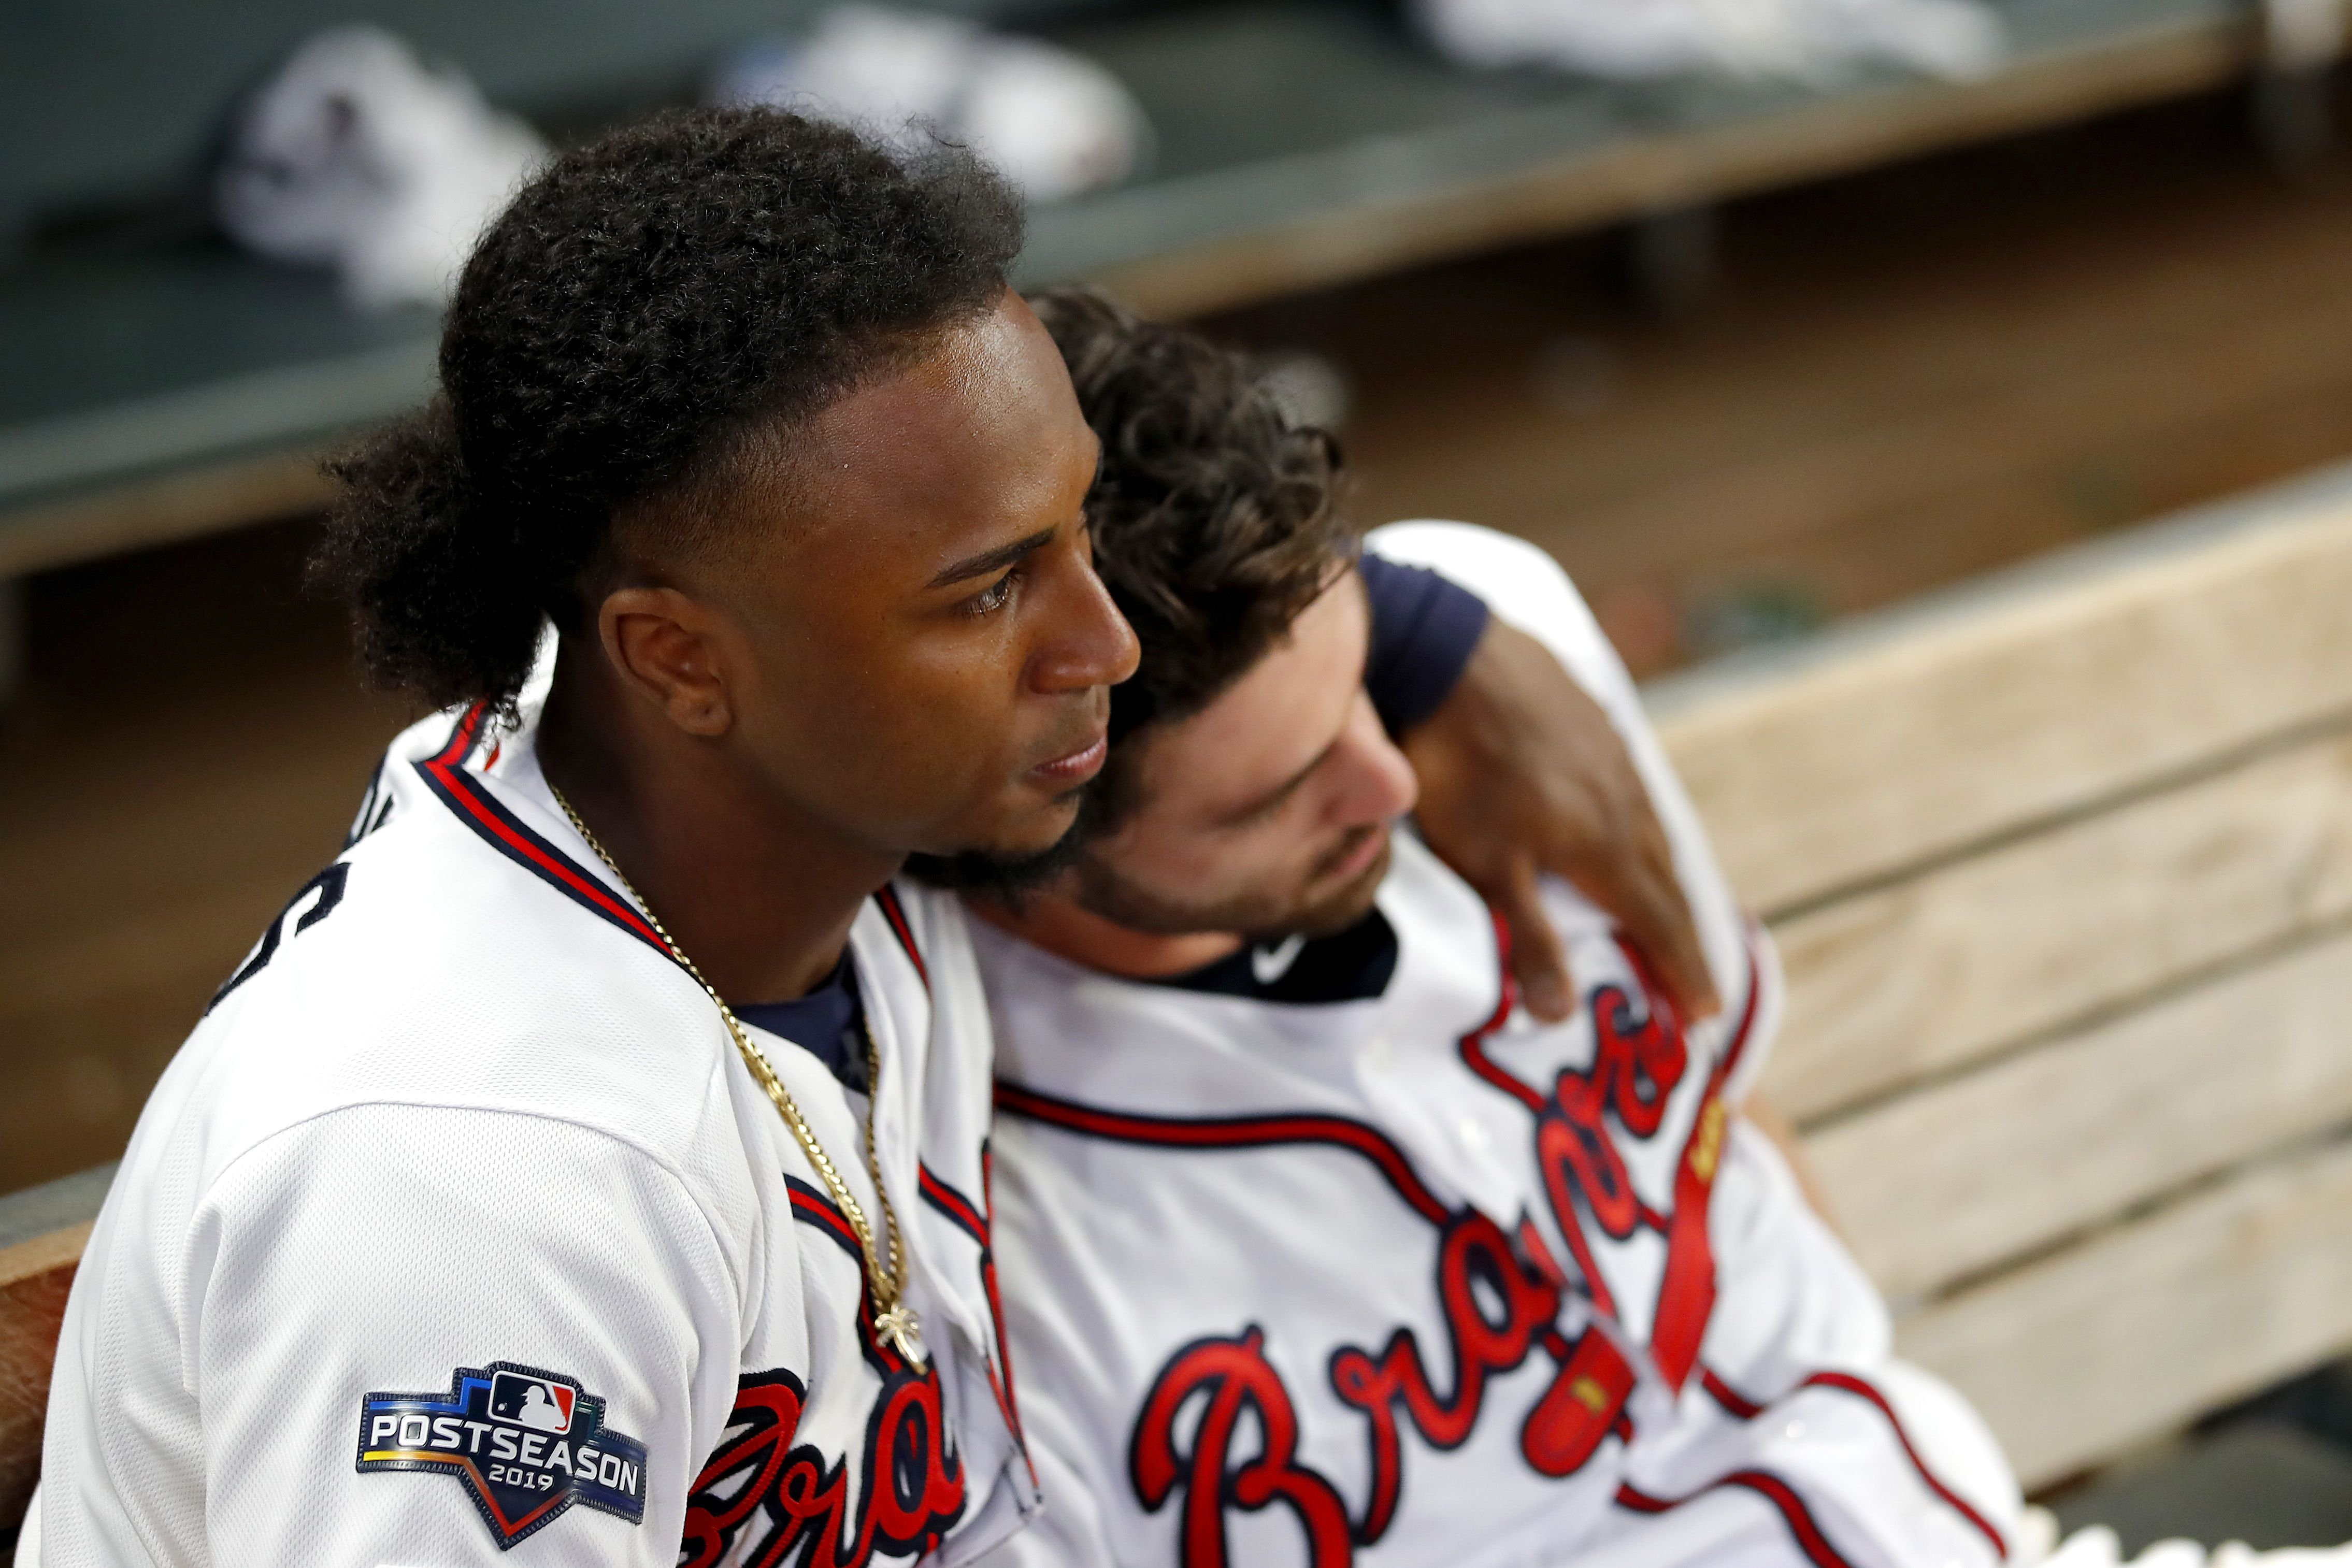 Braves players consoling each other